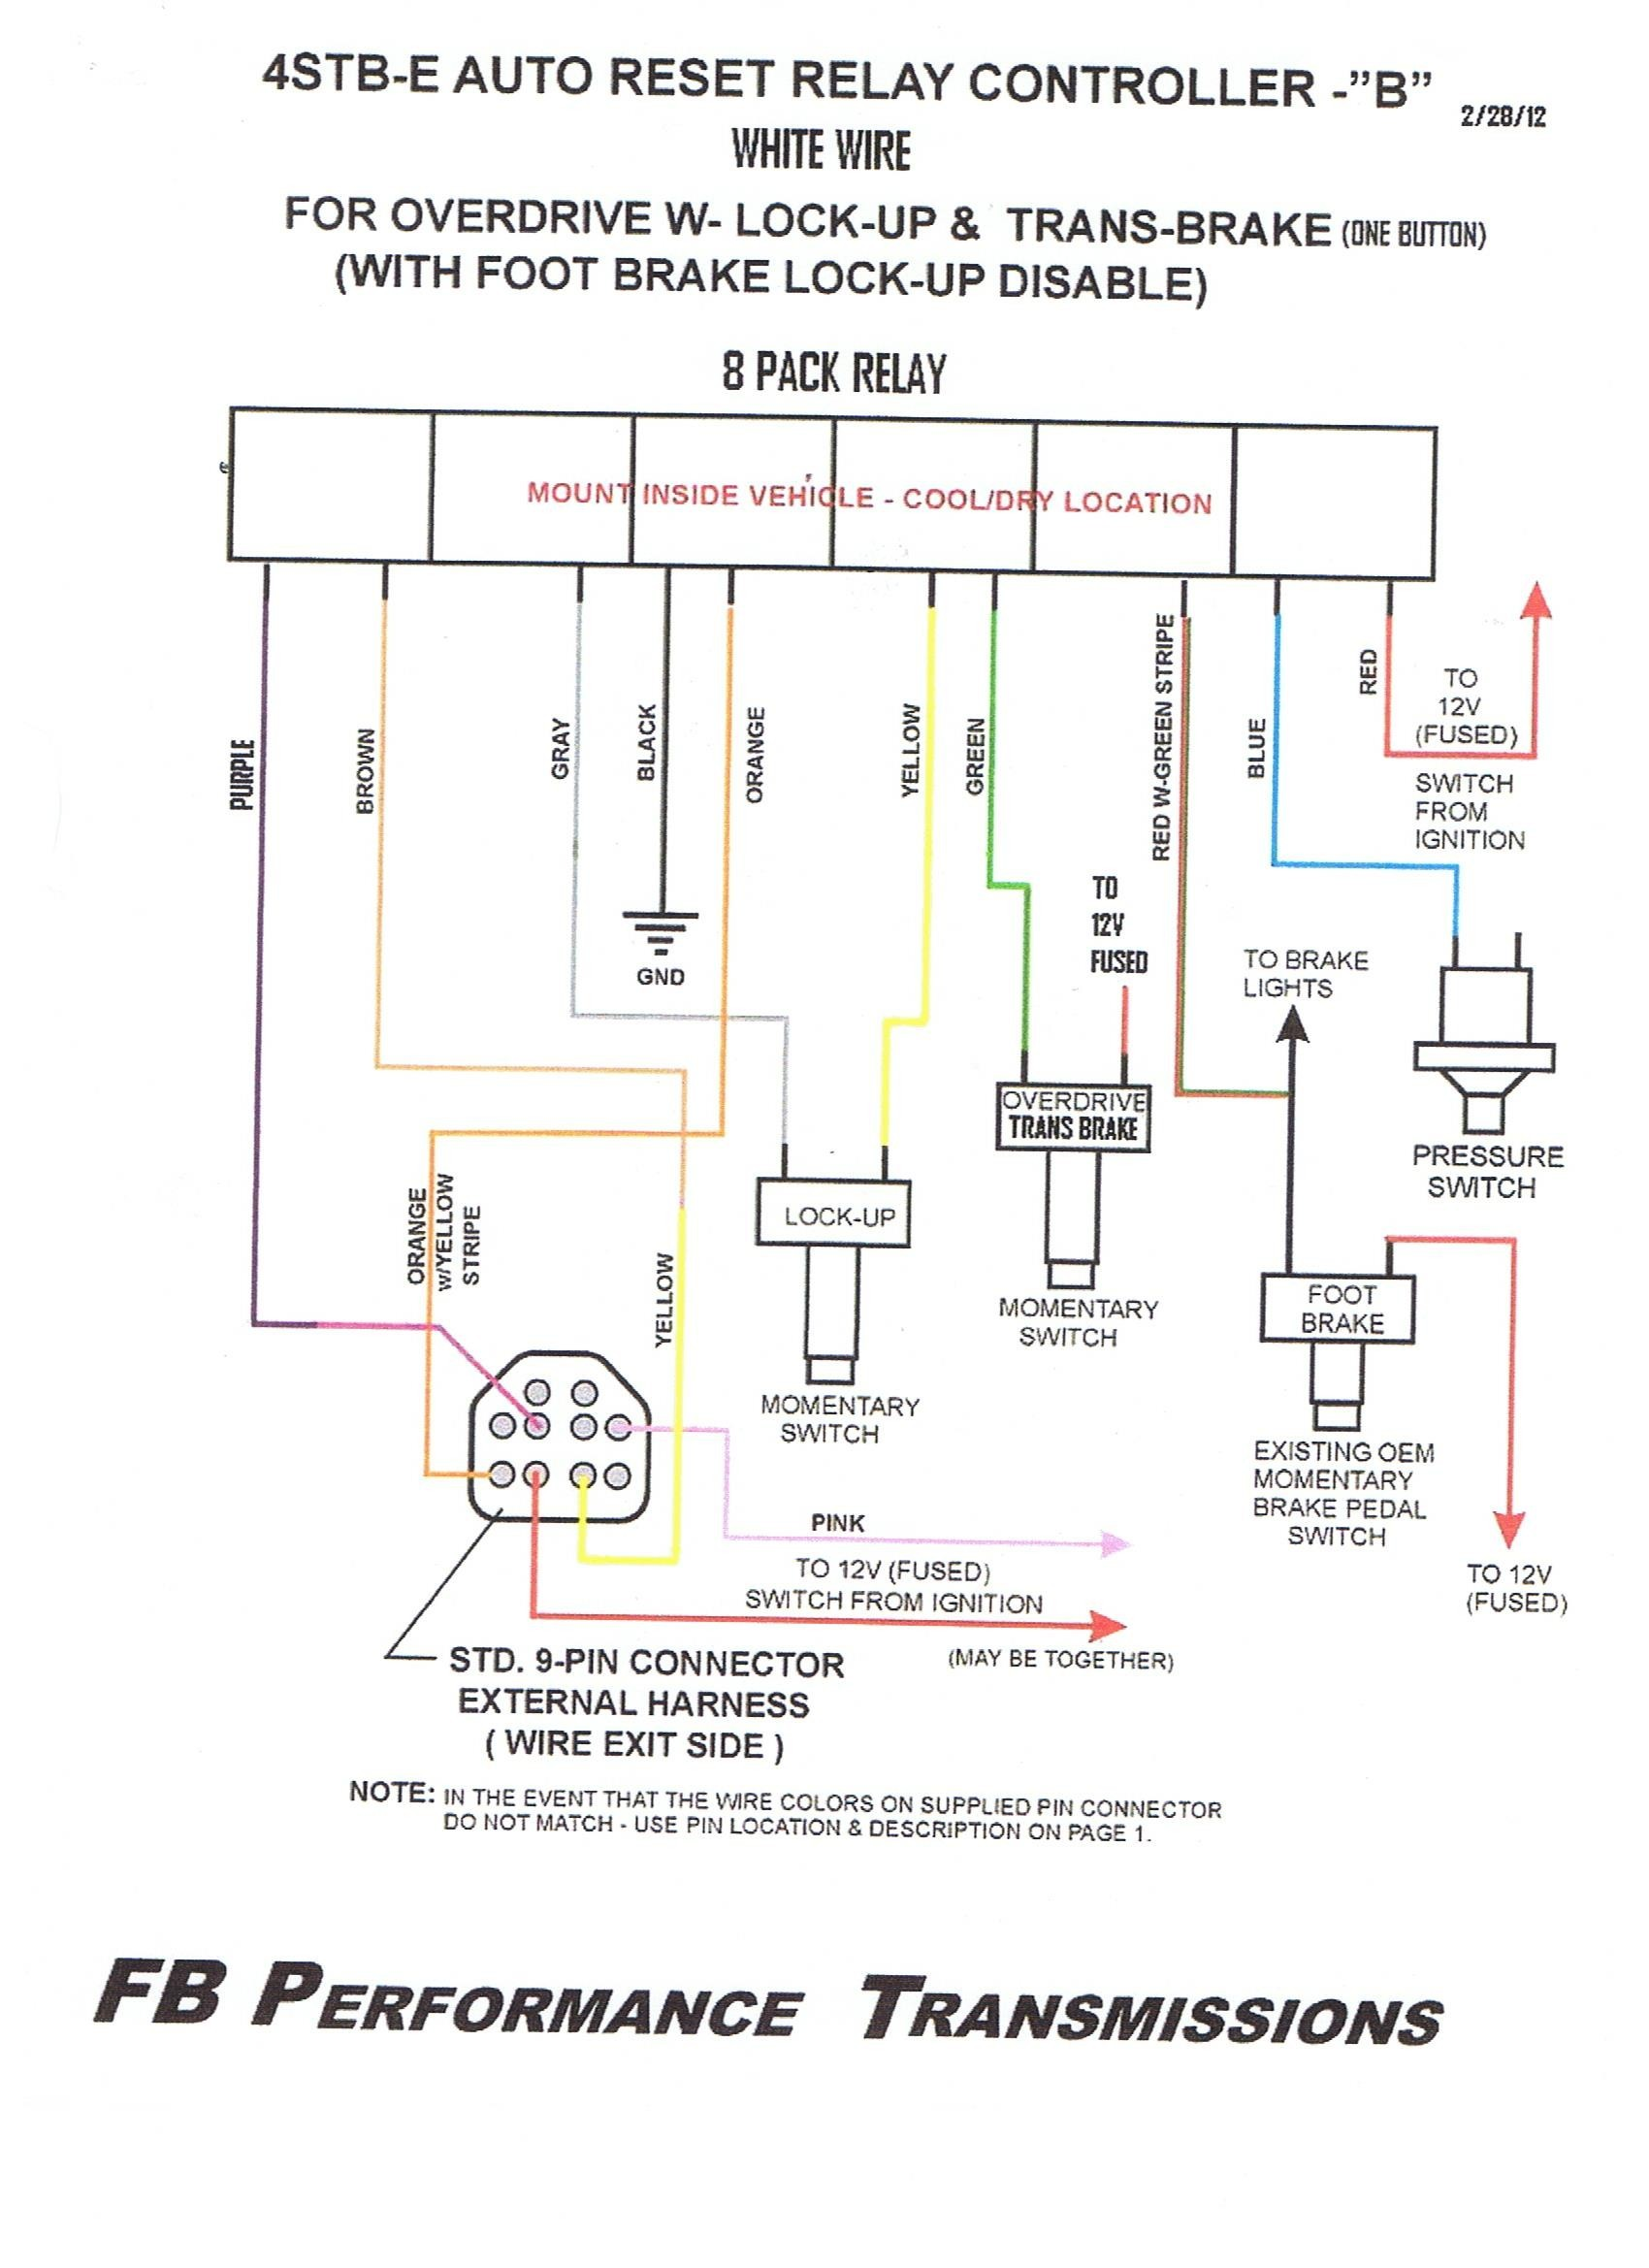 Brake Pedal Switch Diagram Light Wiring New Gm Car Reverse Technical Advice My Of